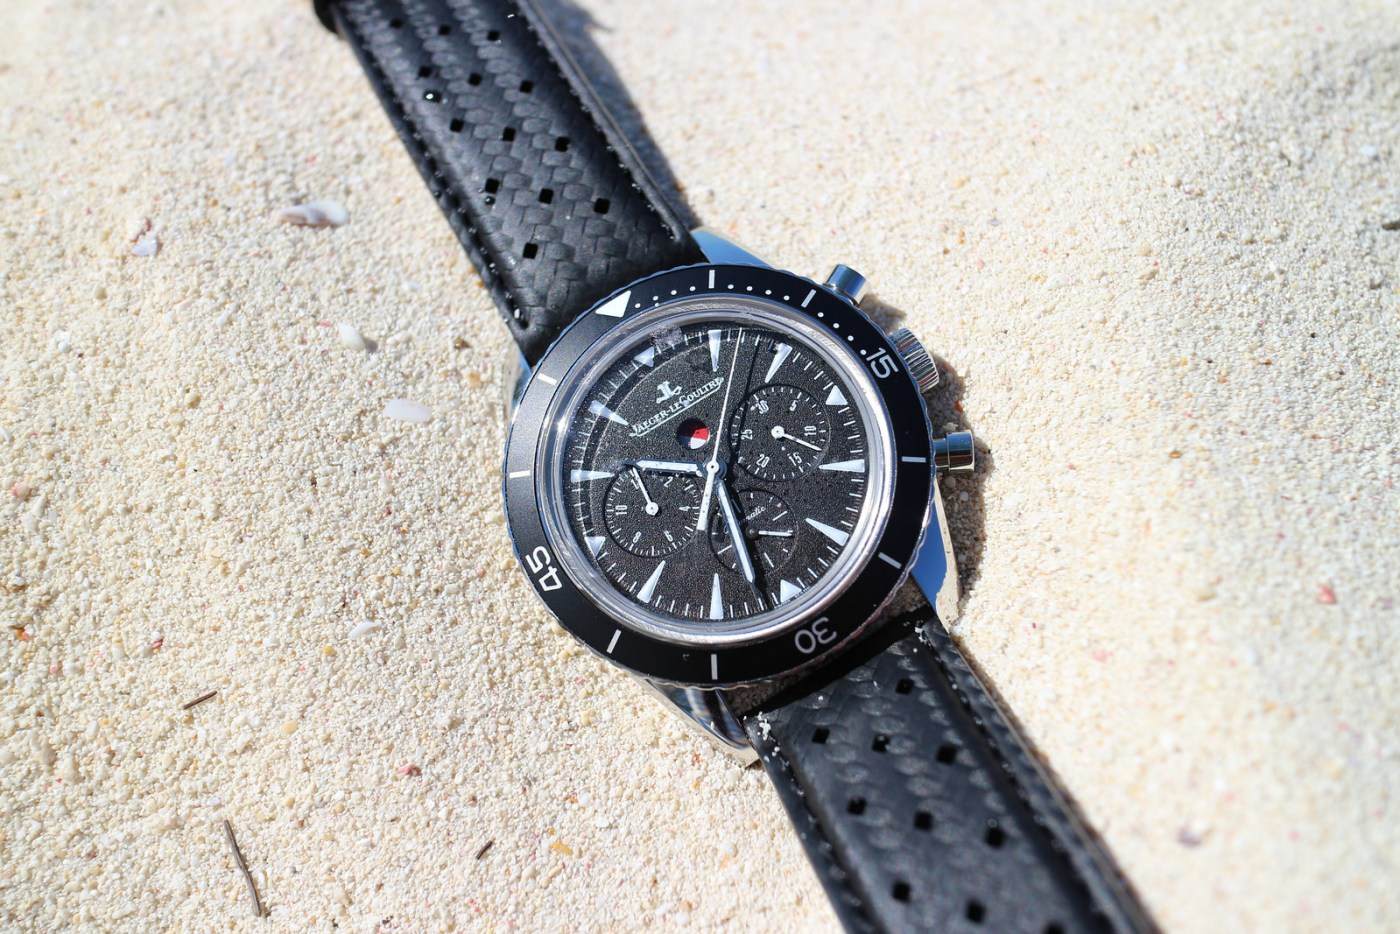 Jaeger-LeCoultre Deep Sea Chronograph in sand